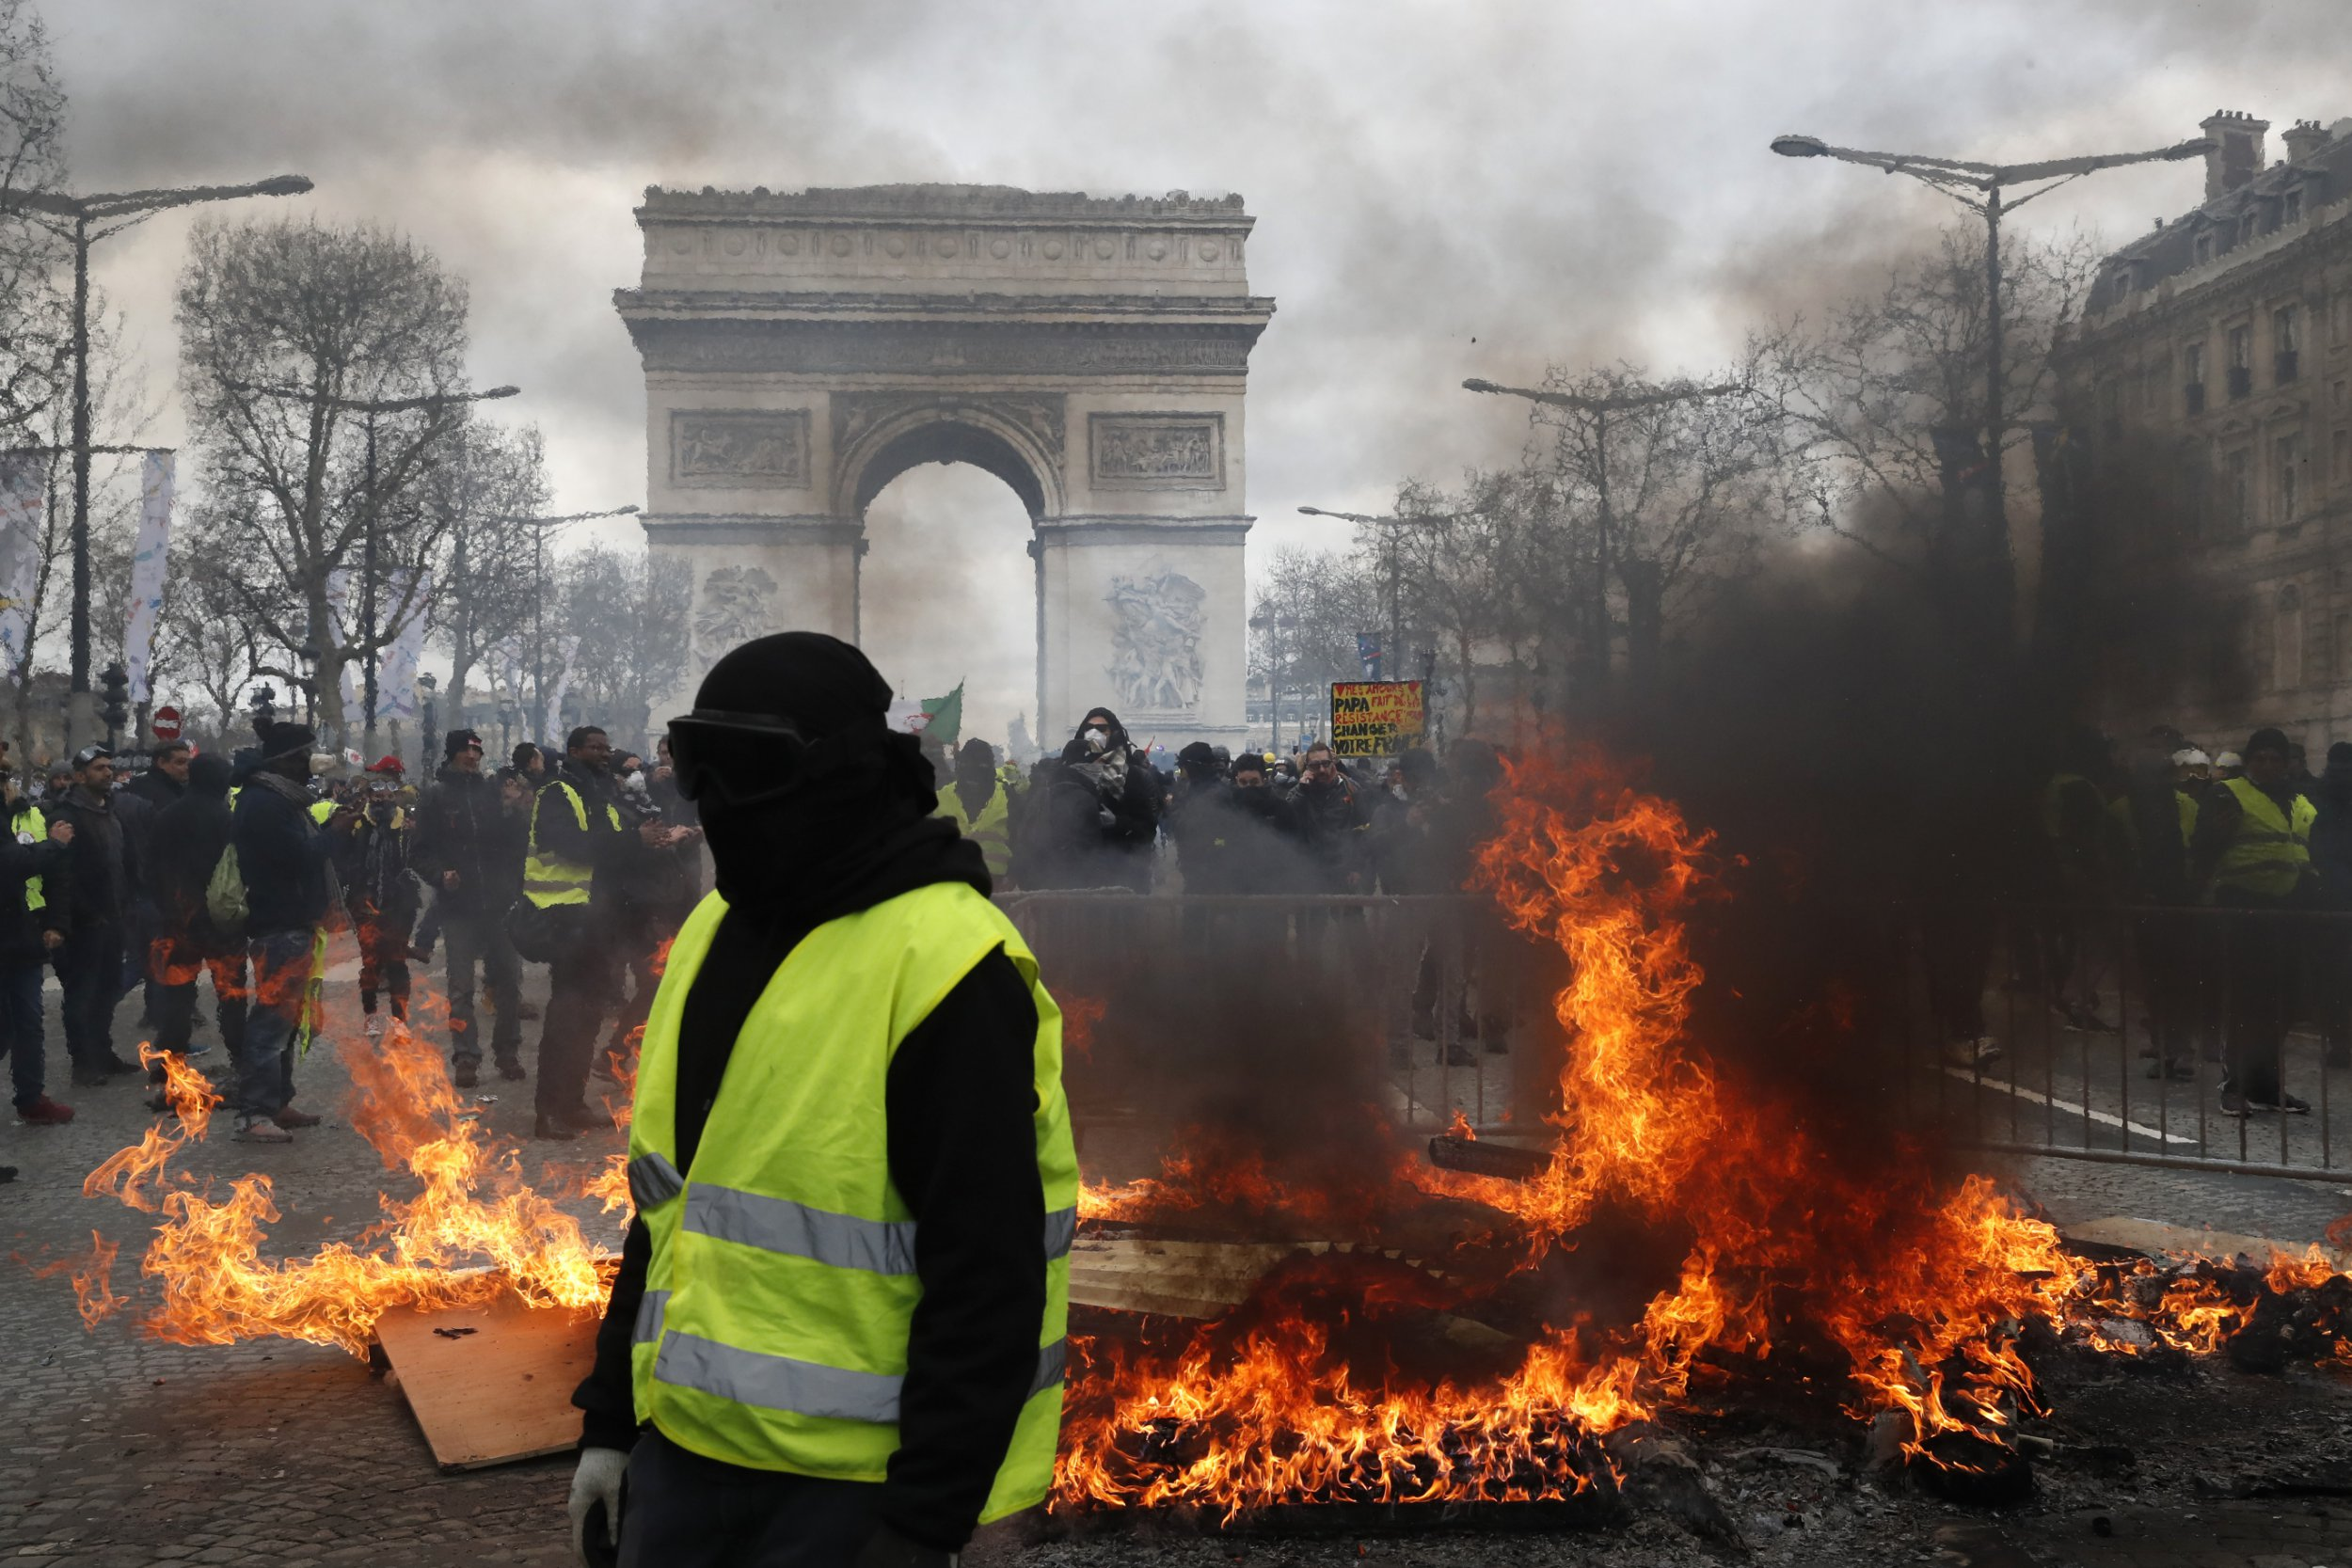 A yellow vest protester walks past a fire on the Champs Elysees avenue Saturday, March 16, 2019 in Paris. French yellow vest protesters clashed Saturday with riot police near the Arc de Triomphe as they kicked off their 18th straight weekend of demonstrations against President Emmanuel Macron. (AP Photo/Christophe Ena)